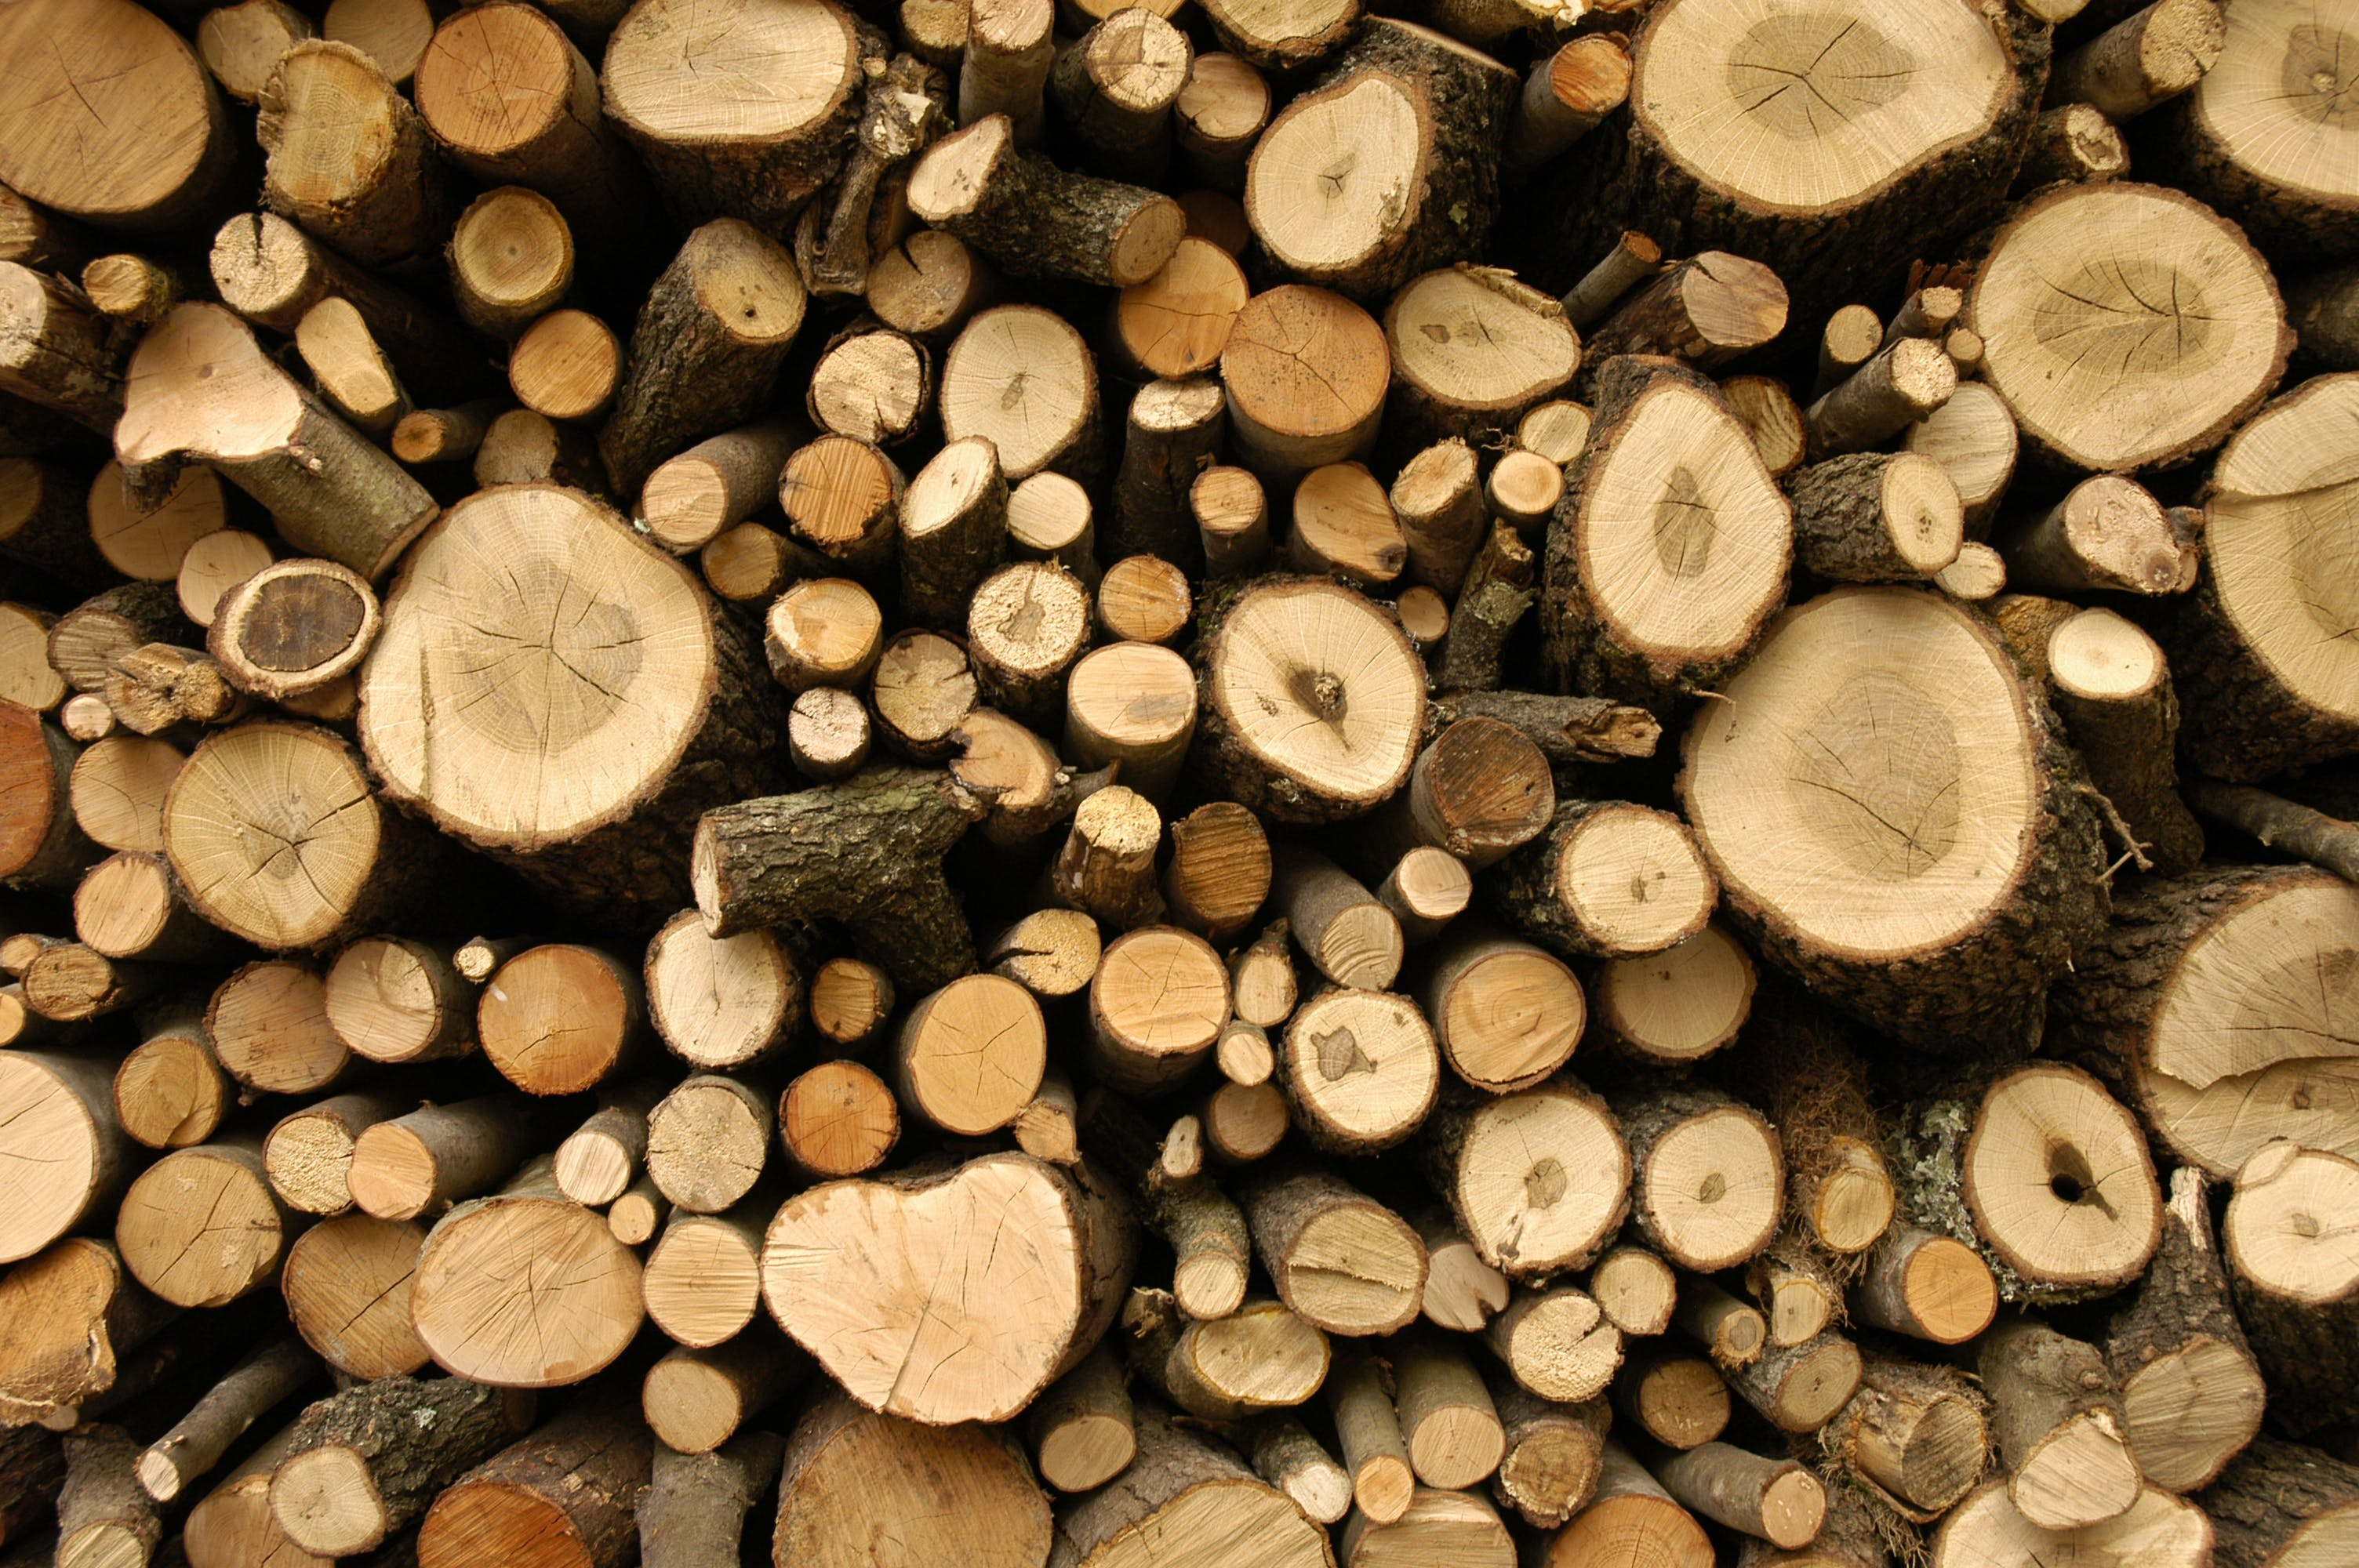 Free stock photo of firewood, bark, outdoors, environment